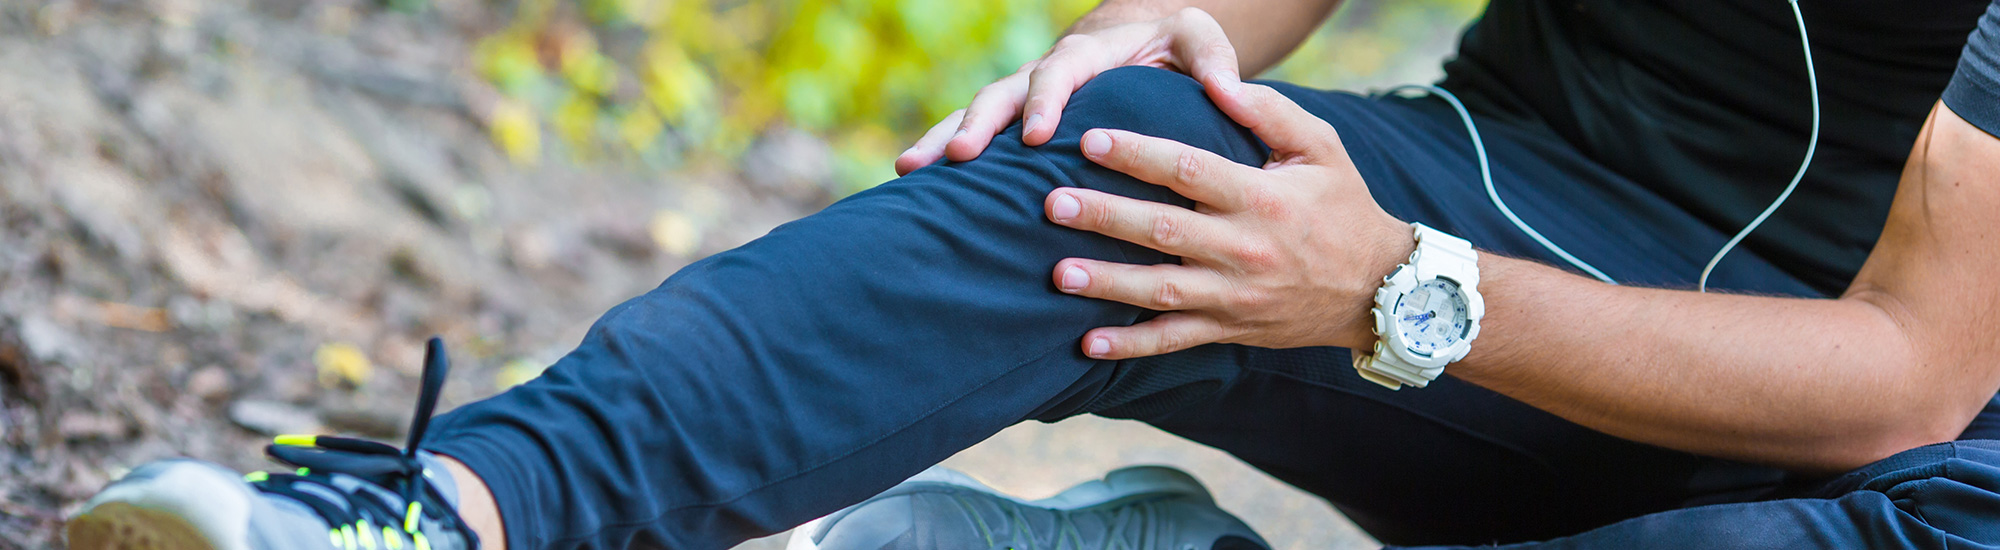 Ayurvedic treatment for Knee Pain FAQs